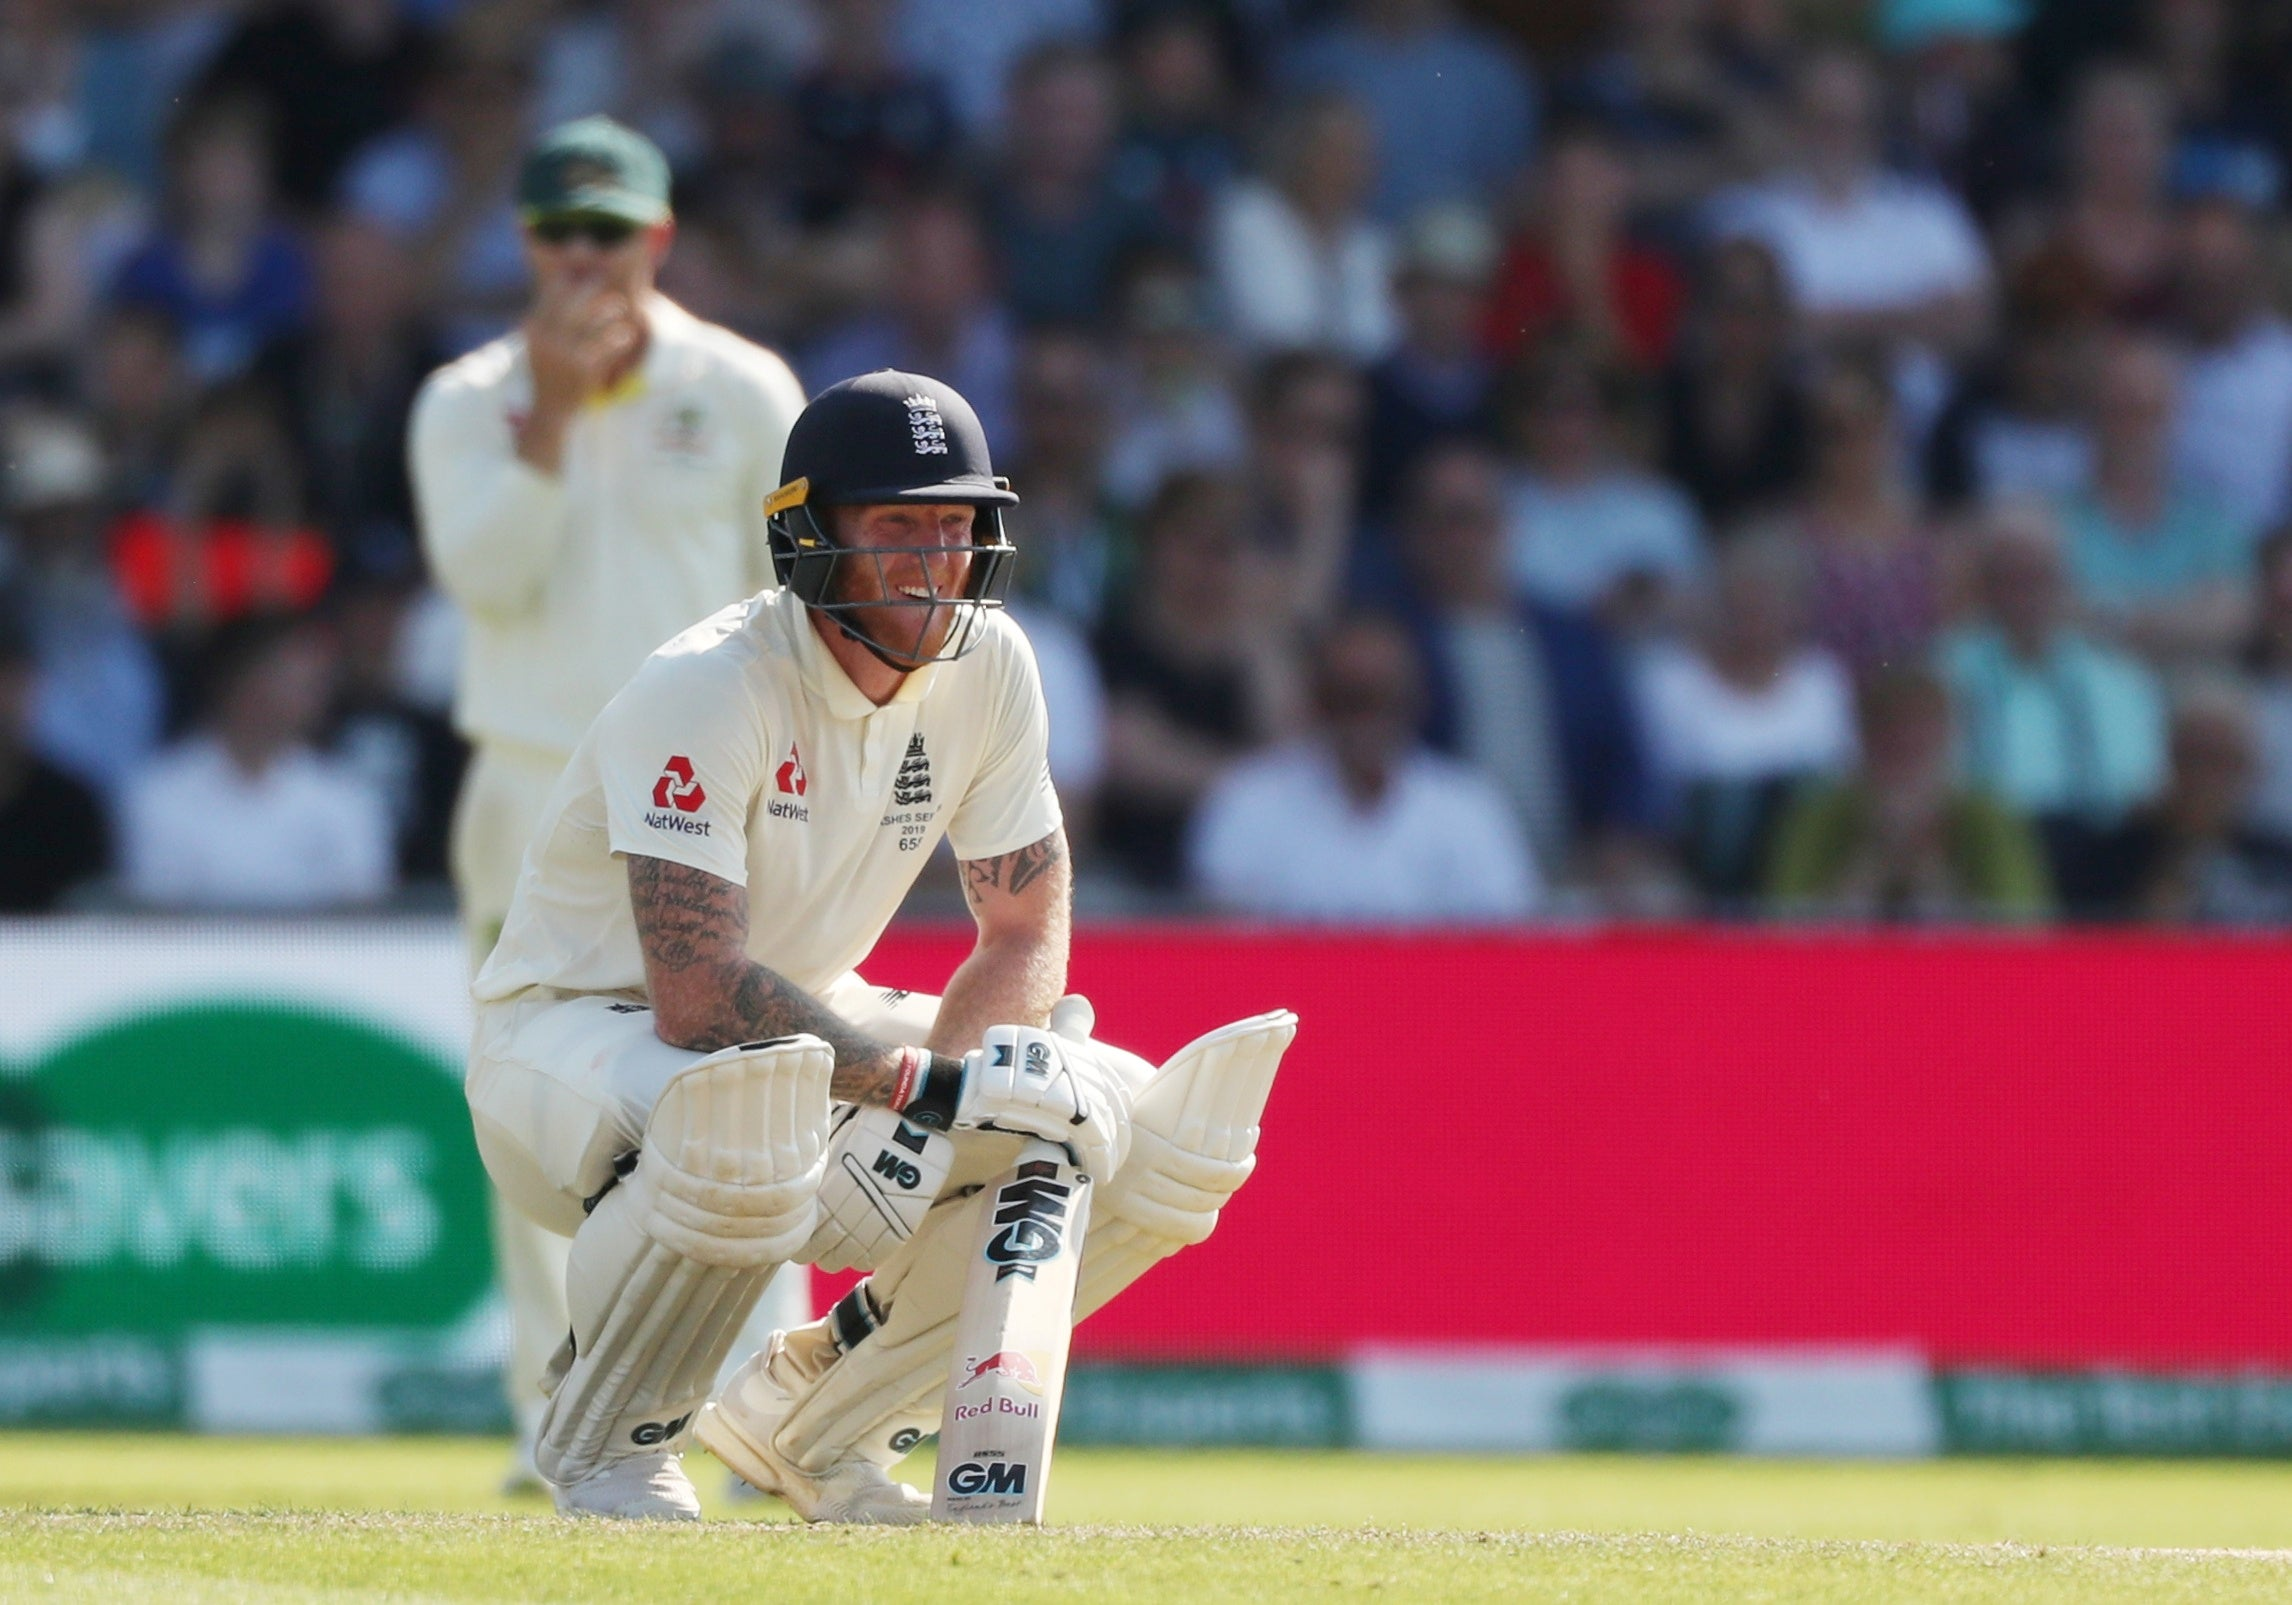 30 greatest Test cricket innings of all time: from Botham to